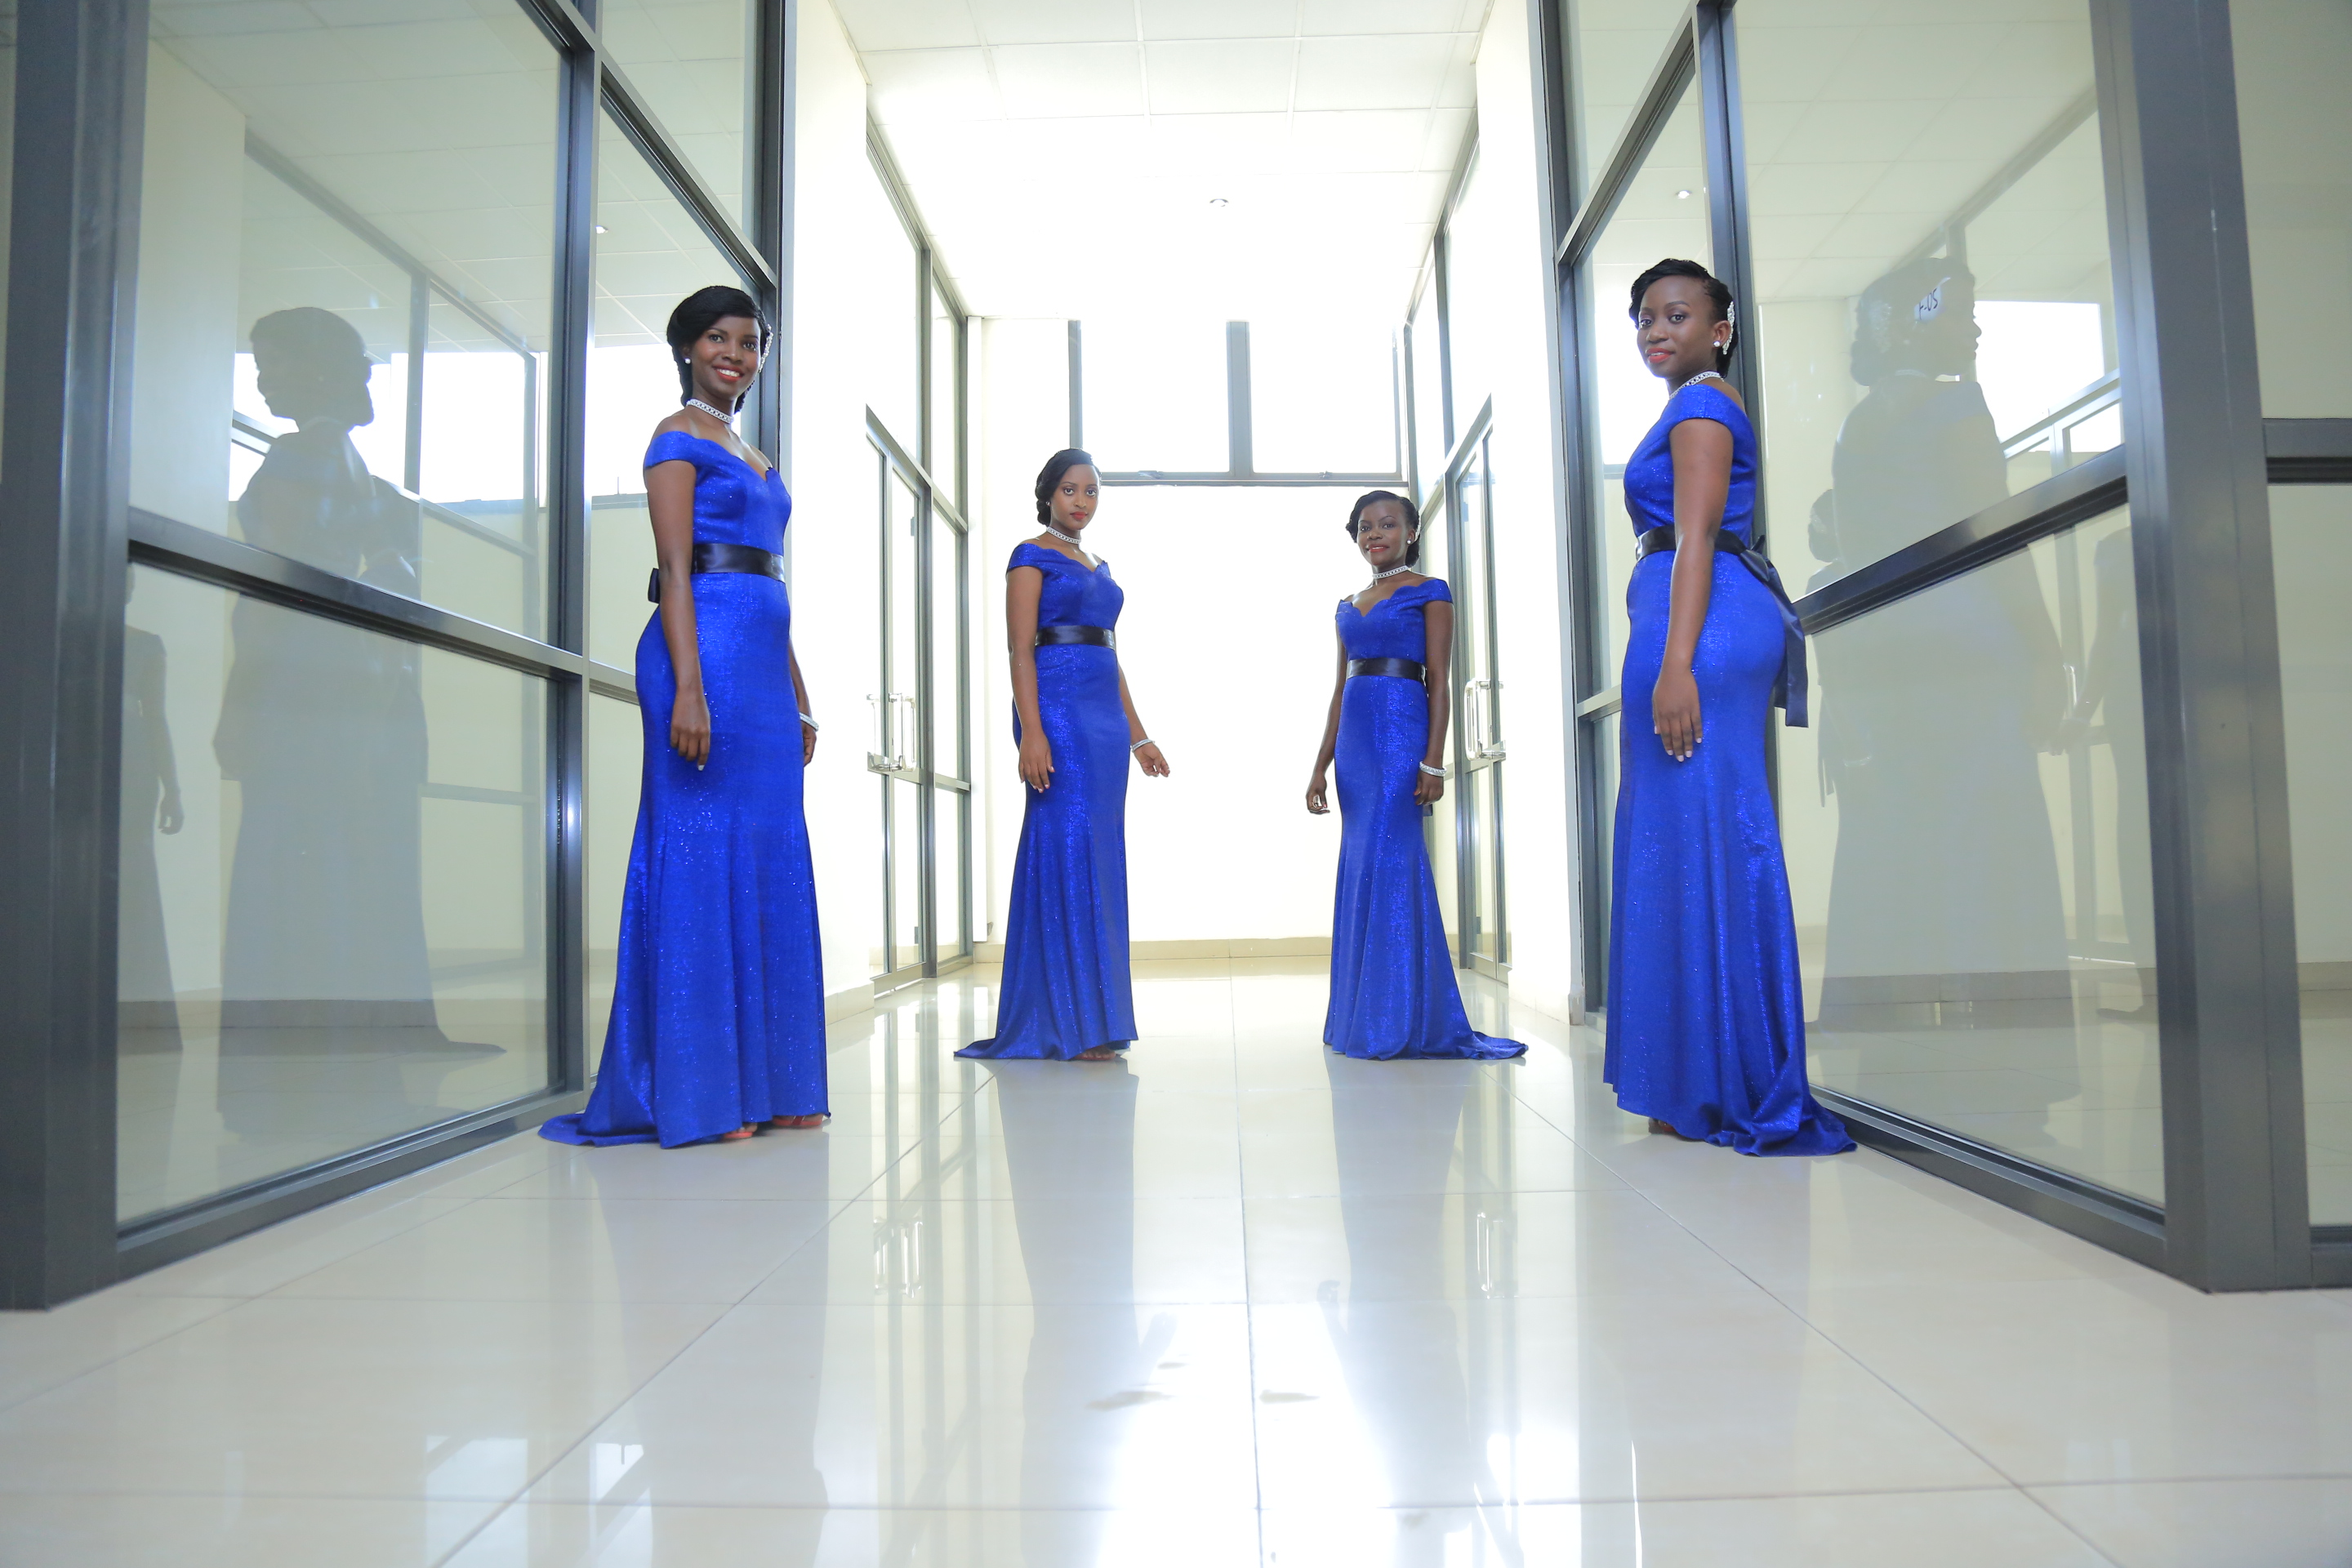 Brenda's bridesmaids clad in blue dresses, shots by Alexander Photography